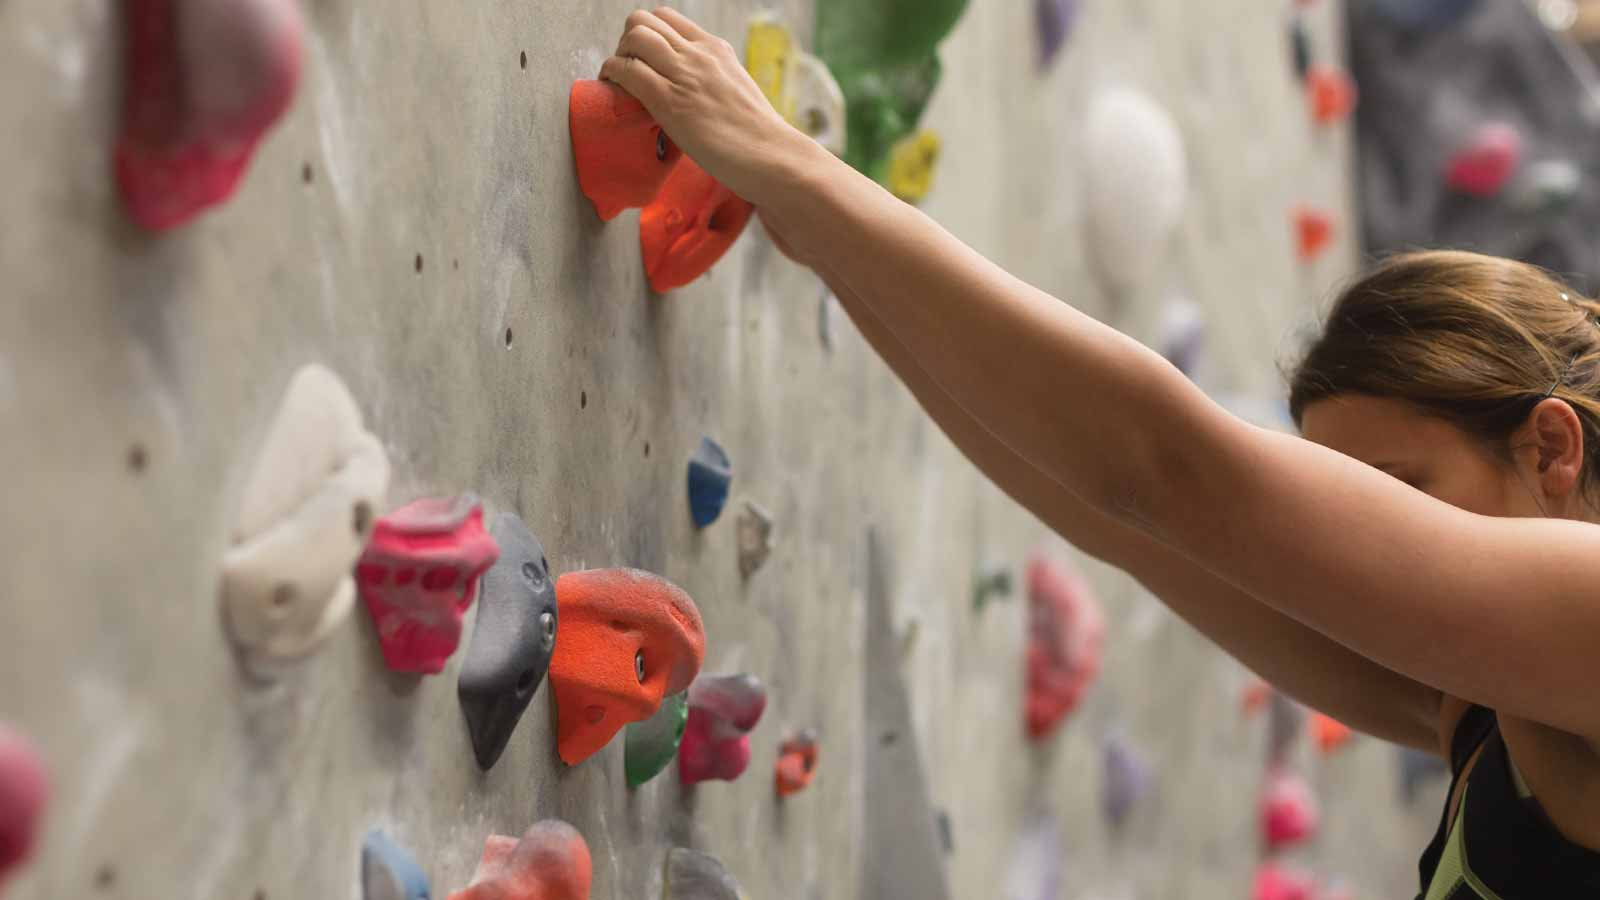 A woman reaching to grab a hold above her while bouldering